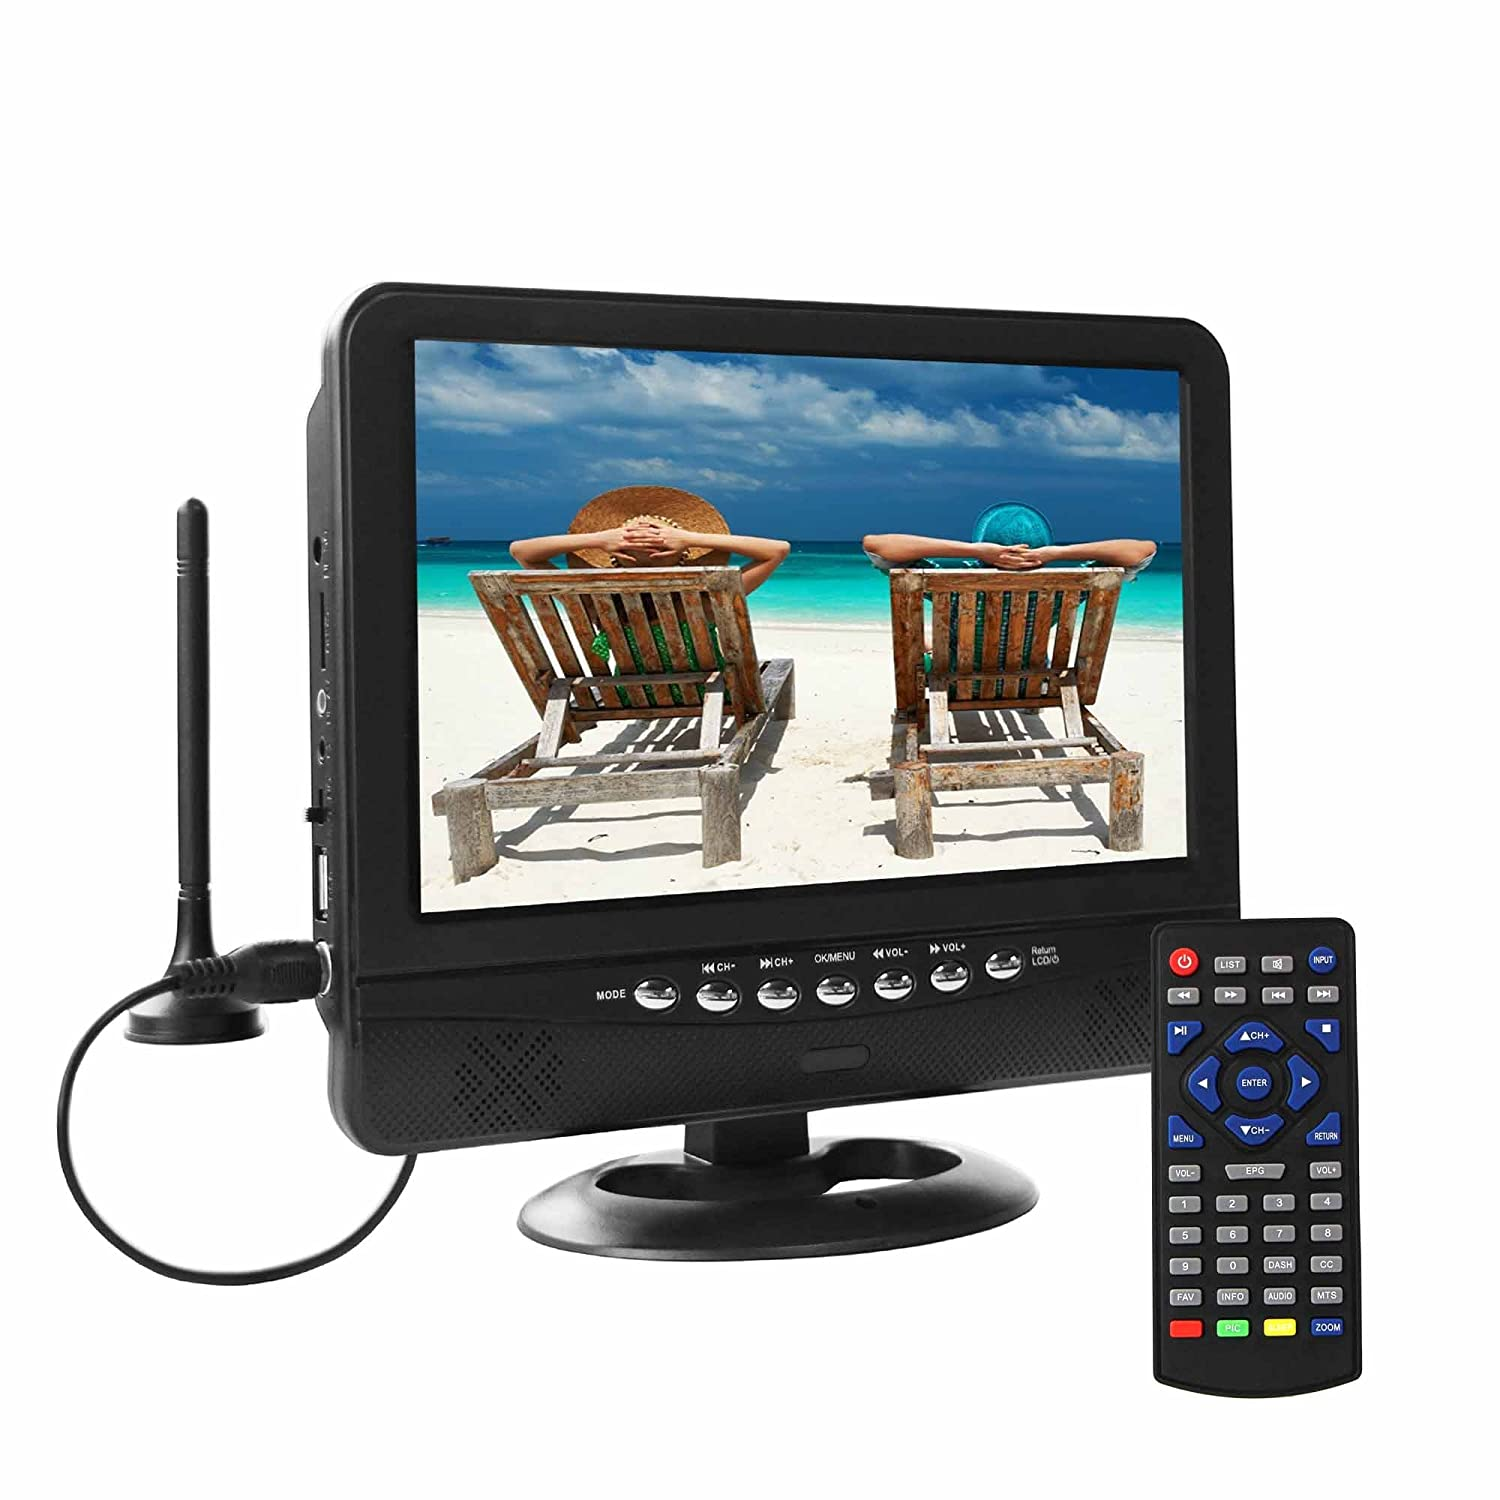 GJY 9-Inch Portable TV, Features ATSC TV Tuner+NTSC,USB/TF/Headphone Inputs, Full Function Remote with Mini TV,Automotive Mobile TV NS-901D